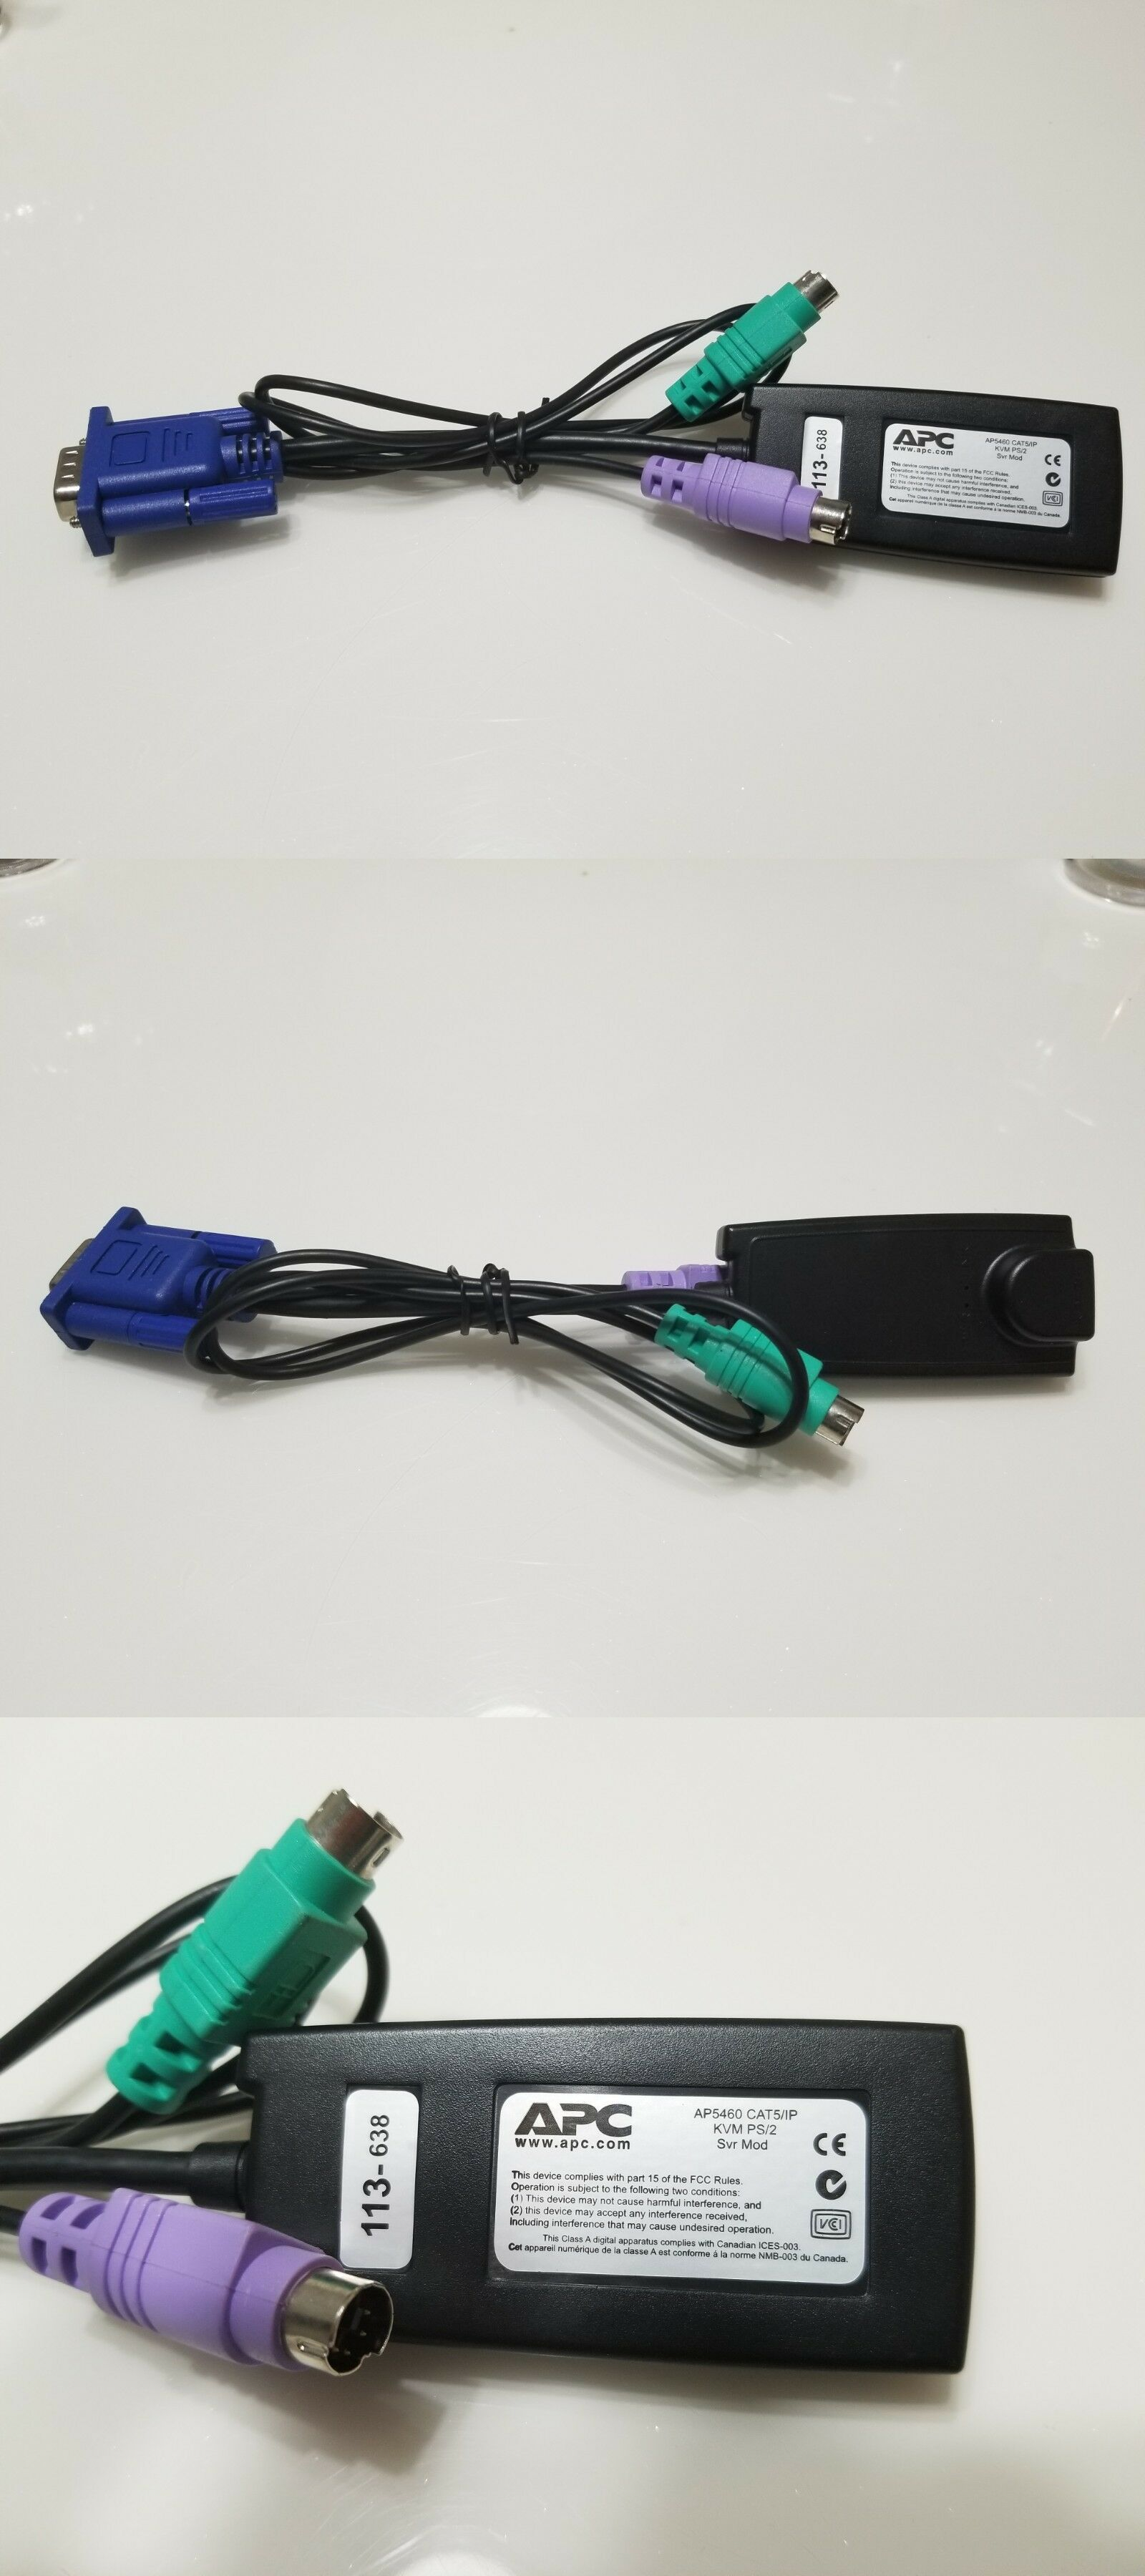 Server Module Cable Ap5460 Cat5 Ip Ebay Kvm Cables Things To Sell Ebay